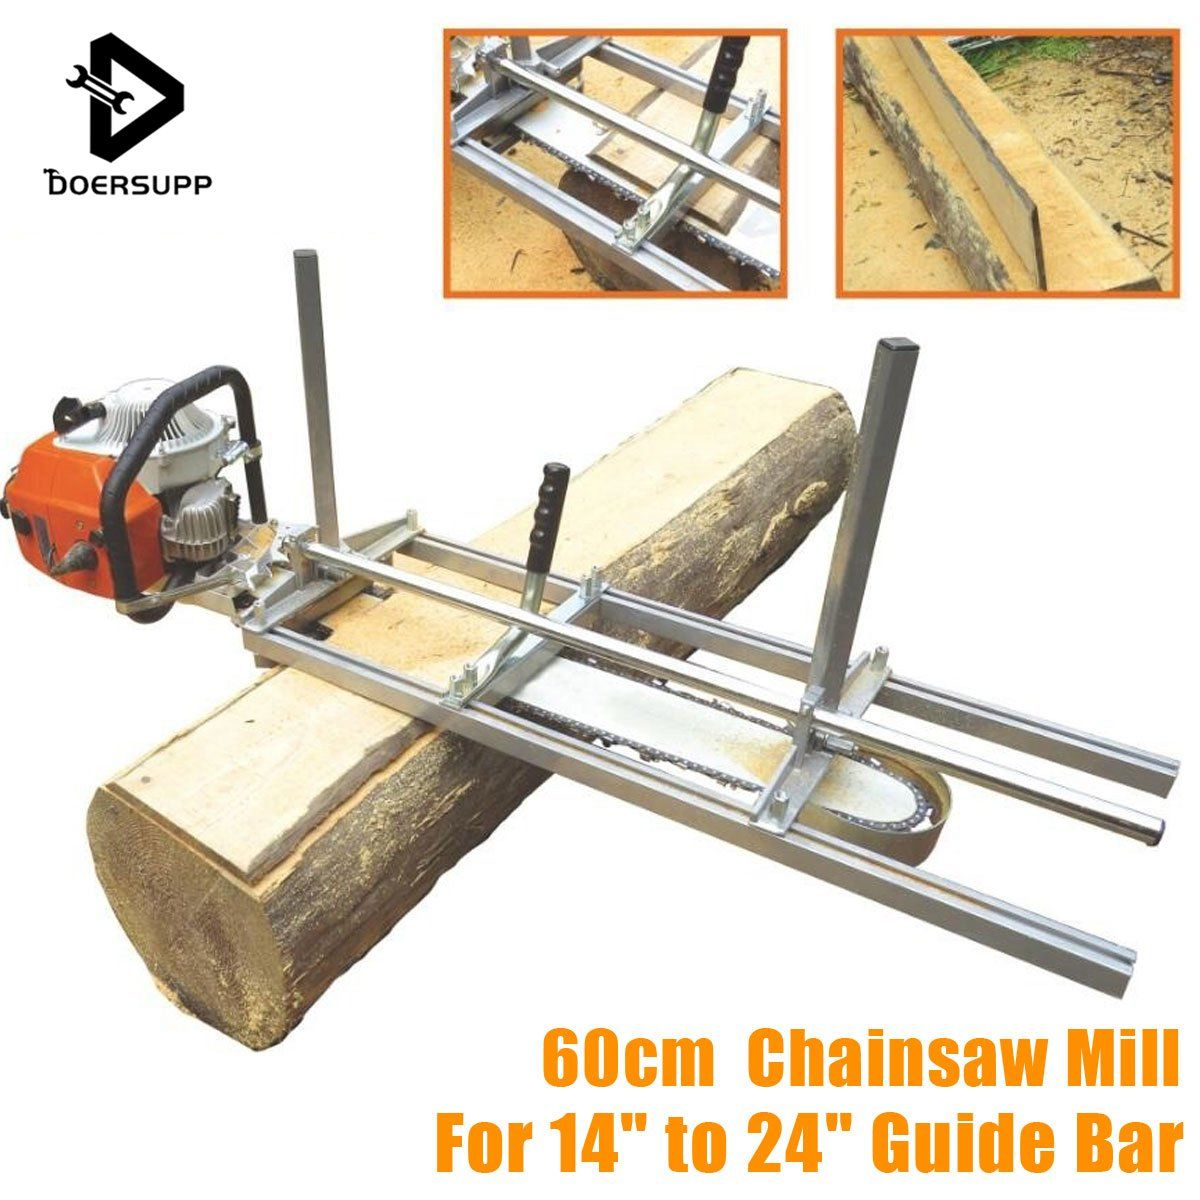 Doersupp 60cm Portable Chainsaw Mill Planking Milling From 14'' to 24'' Guide Bar Planking Lumber Cutting Tool